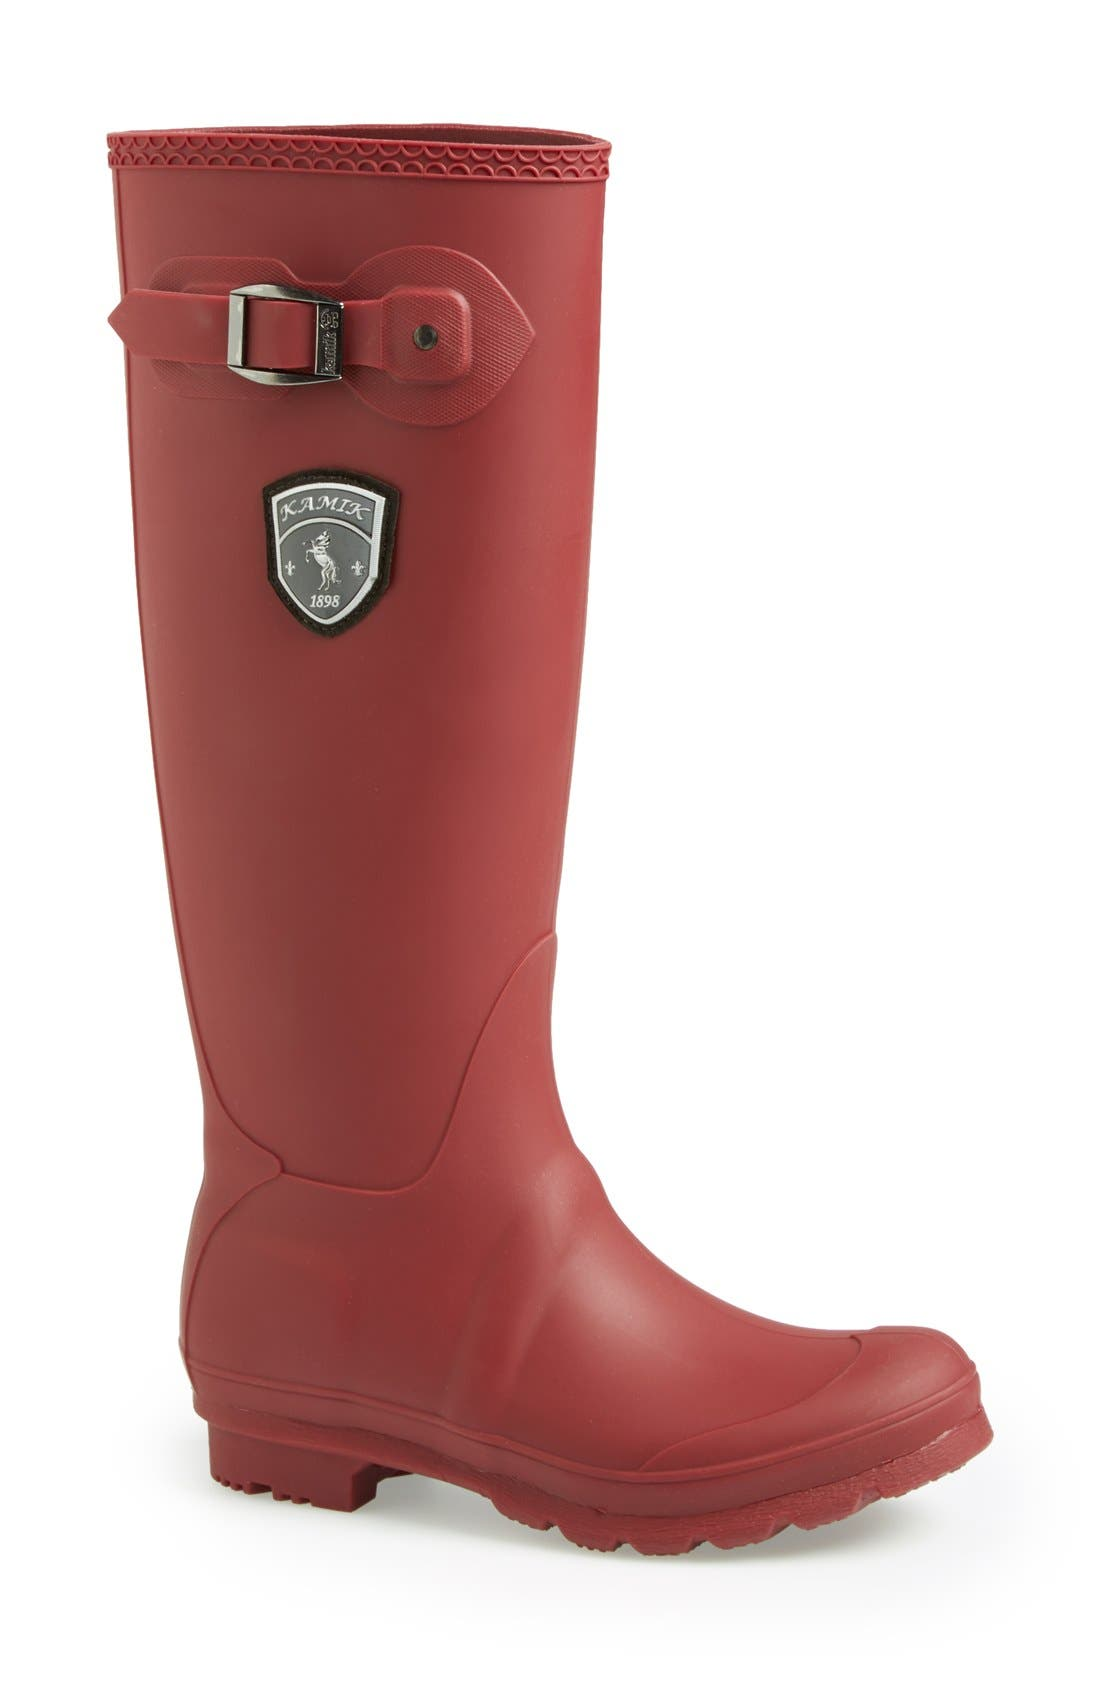 Alternate Image 1 Selected - Kamik 'Jennifer' Rain Boot (Women) (Online Only)